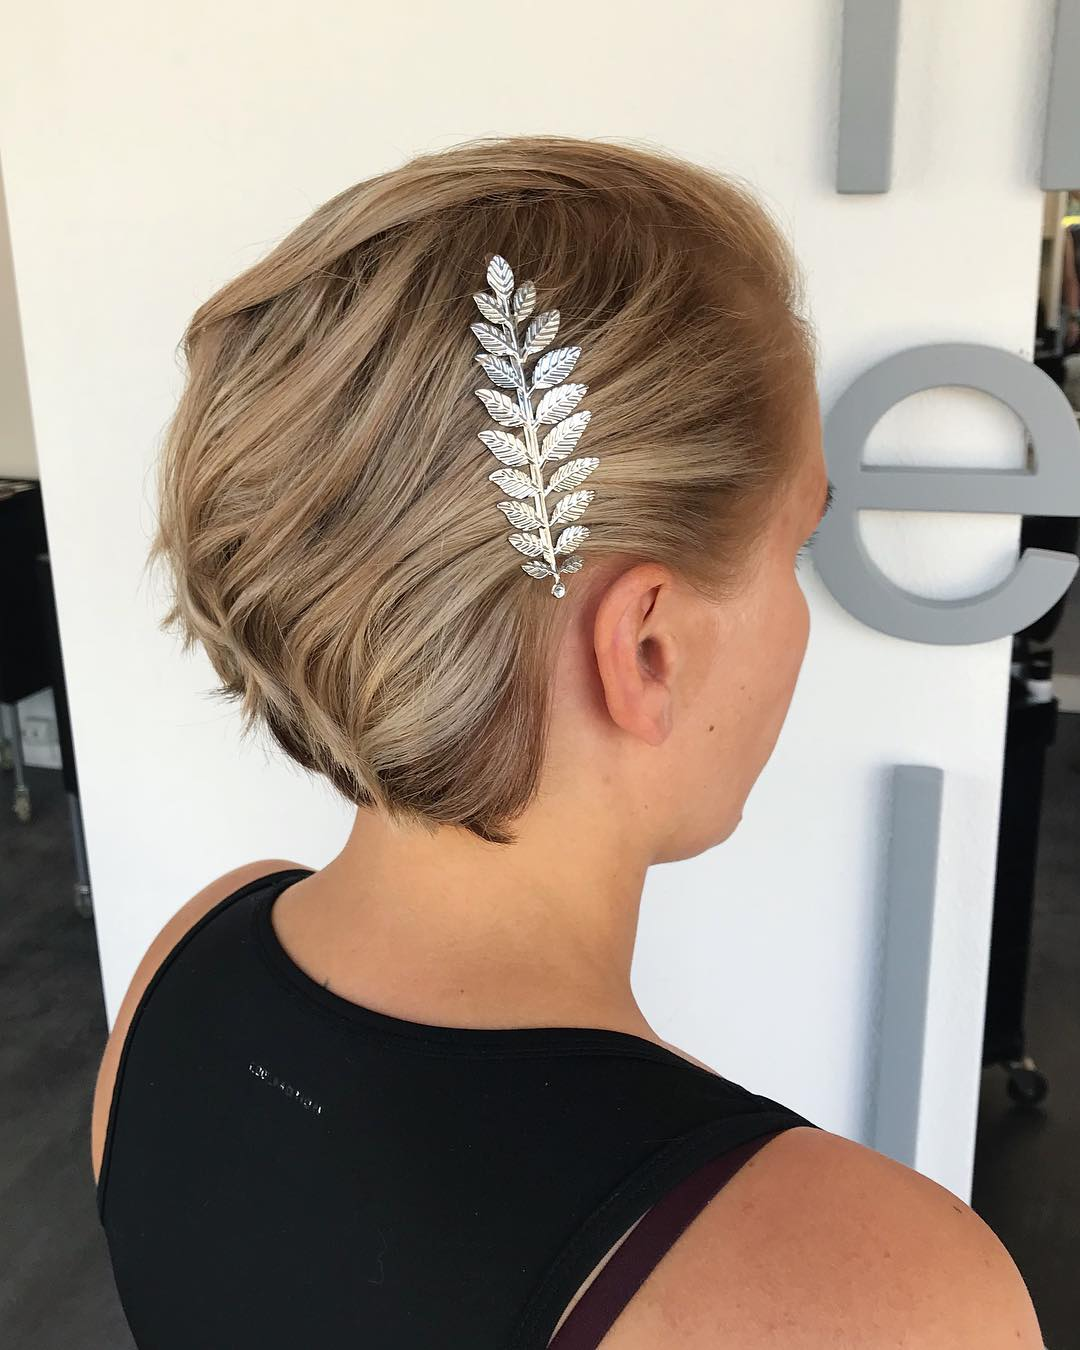 Most Popular Wedding Hairstyles: 30 Of The Most Elegant Wedding Short Hairstyles Of August 2019